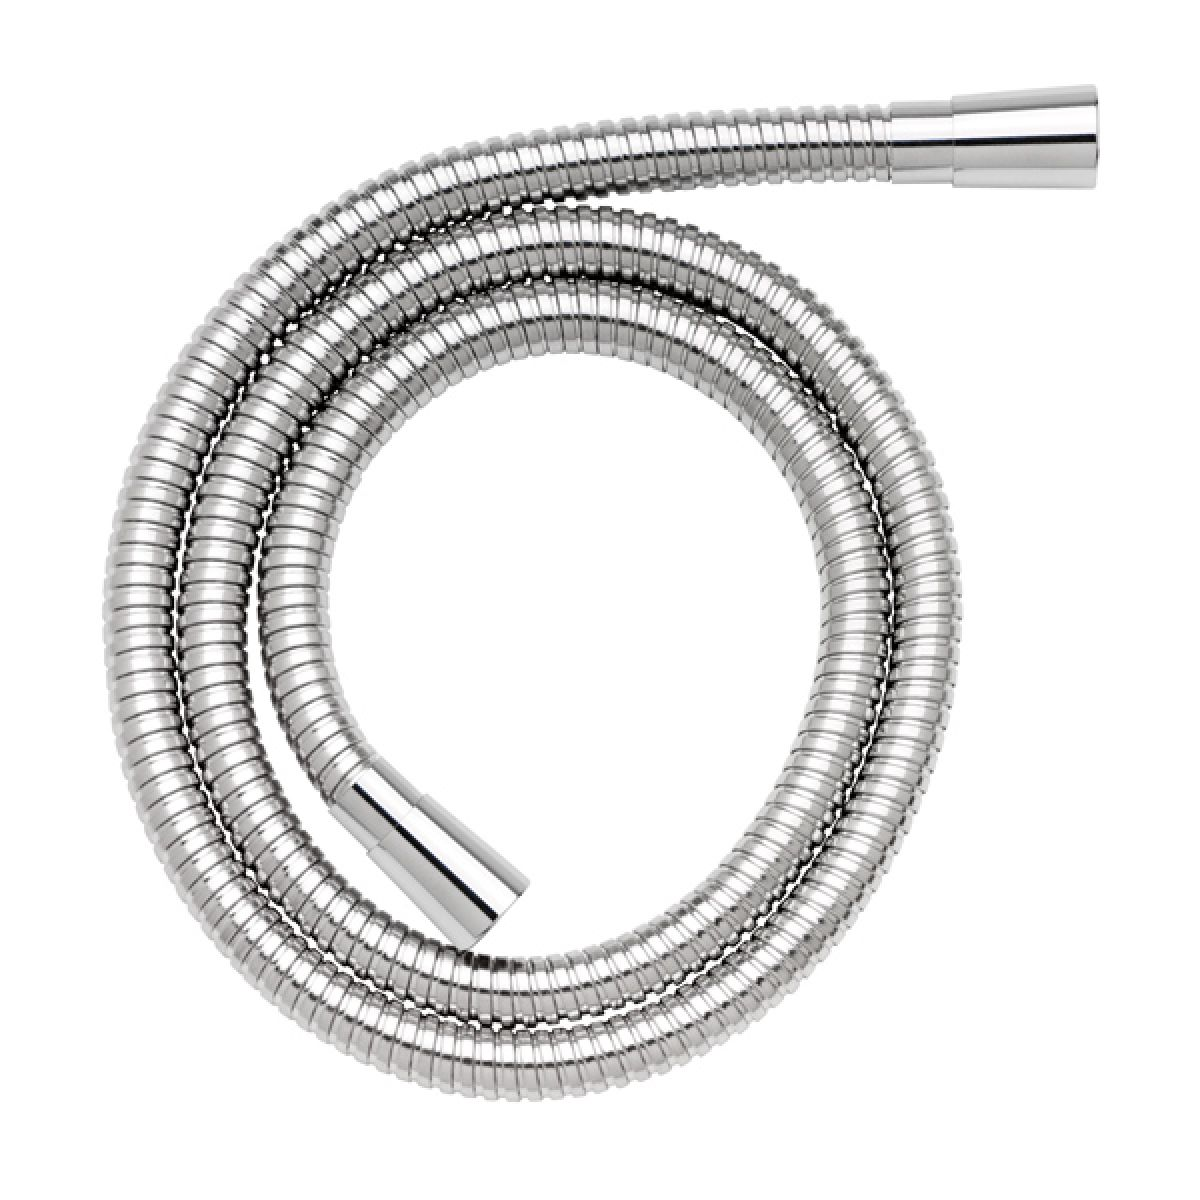 Croydex Stainless Steel Reinforced Shower Hose 2000mm